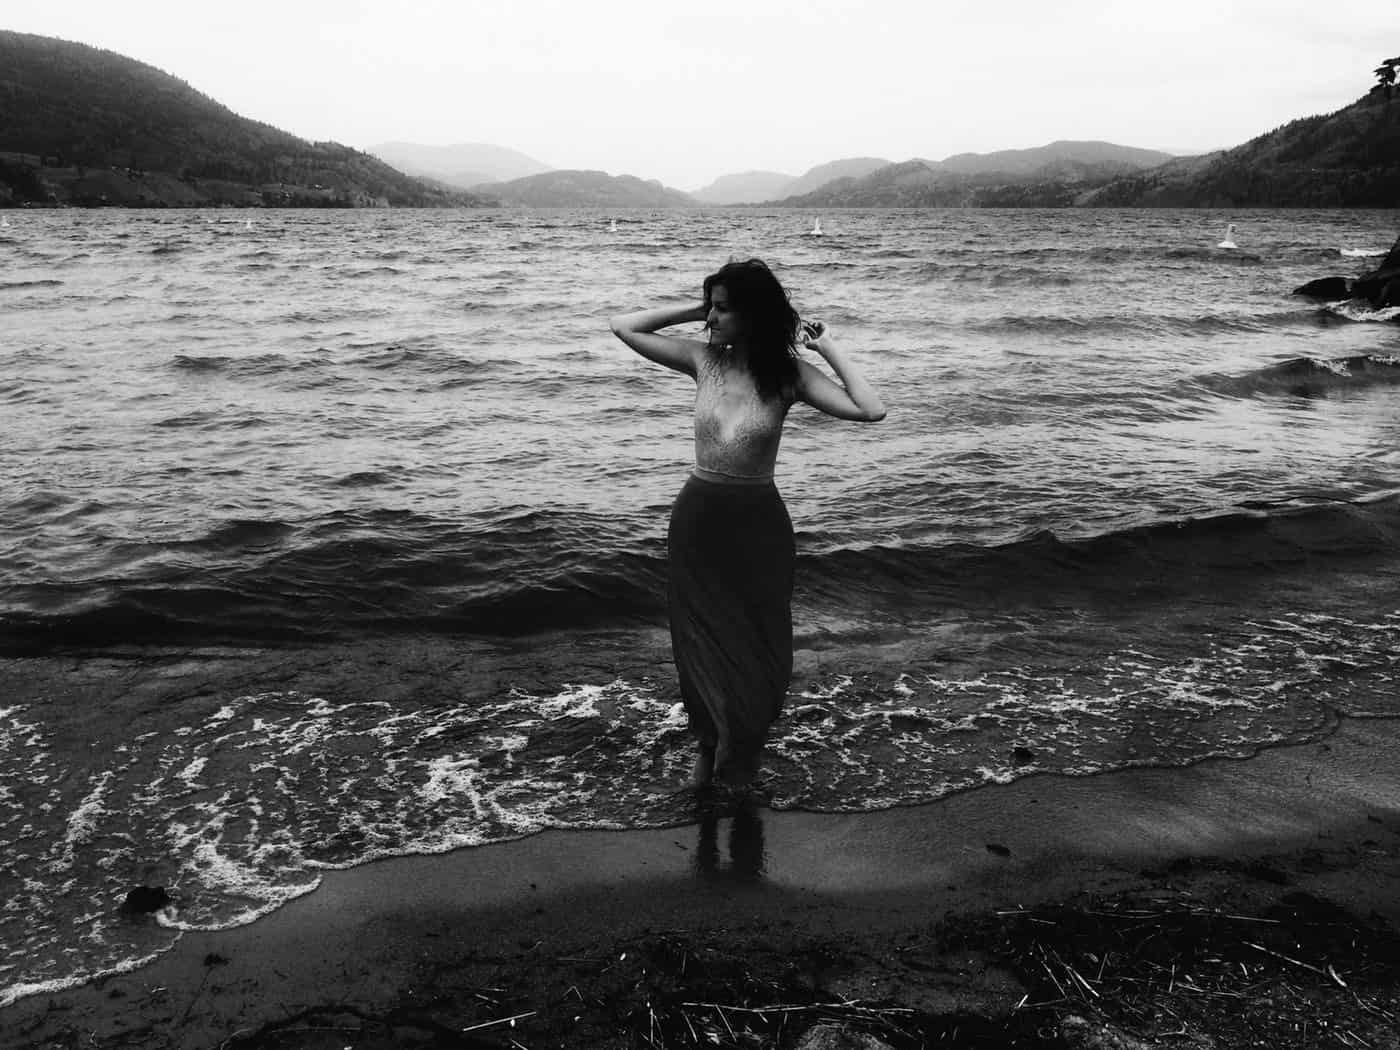 Black and white photo of woman standing beside ocean waves with mountains in the background